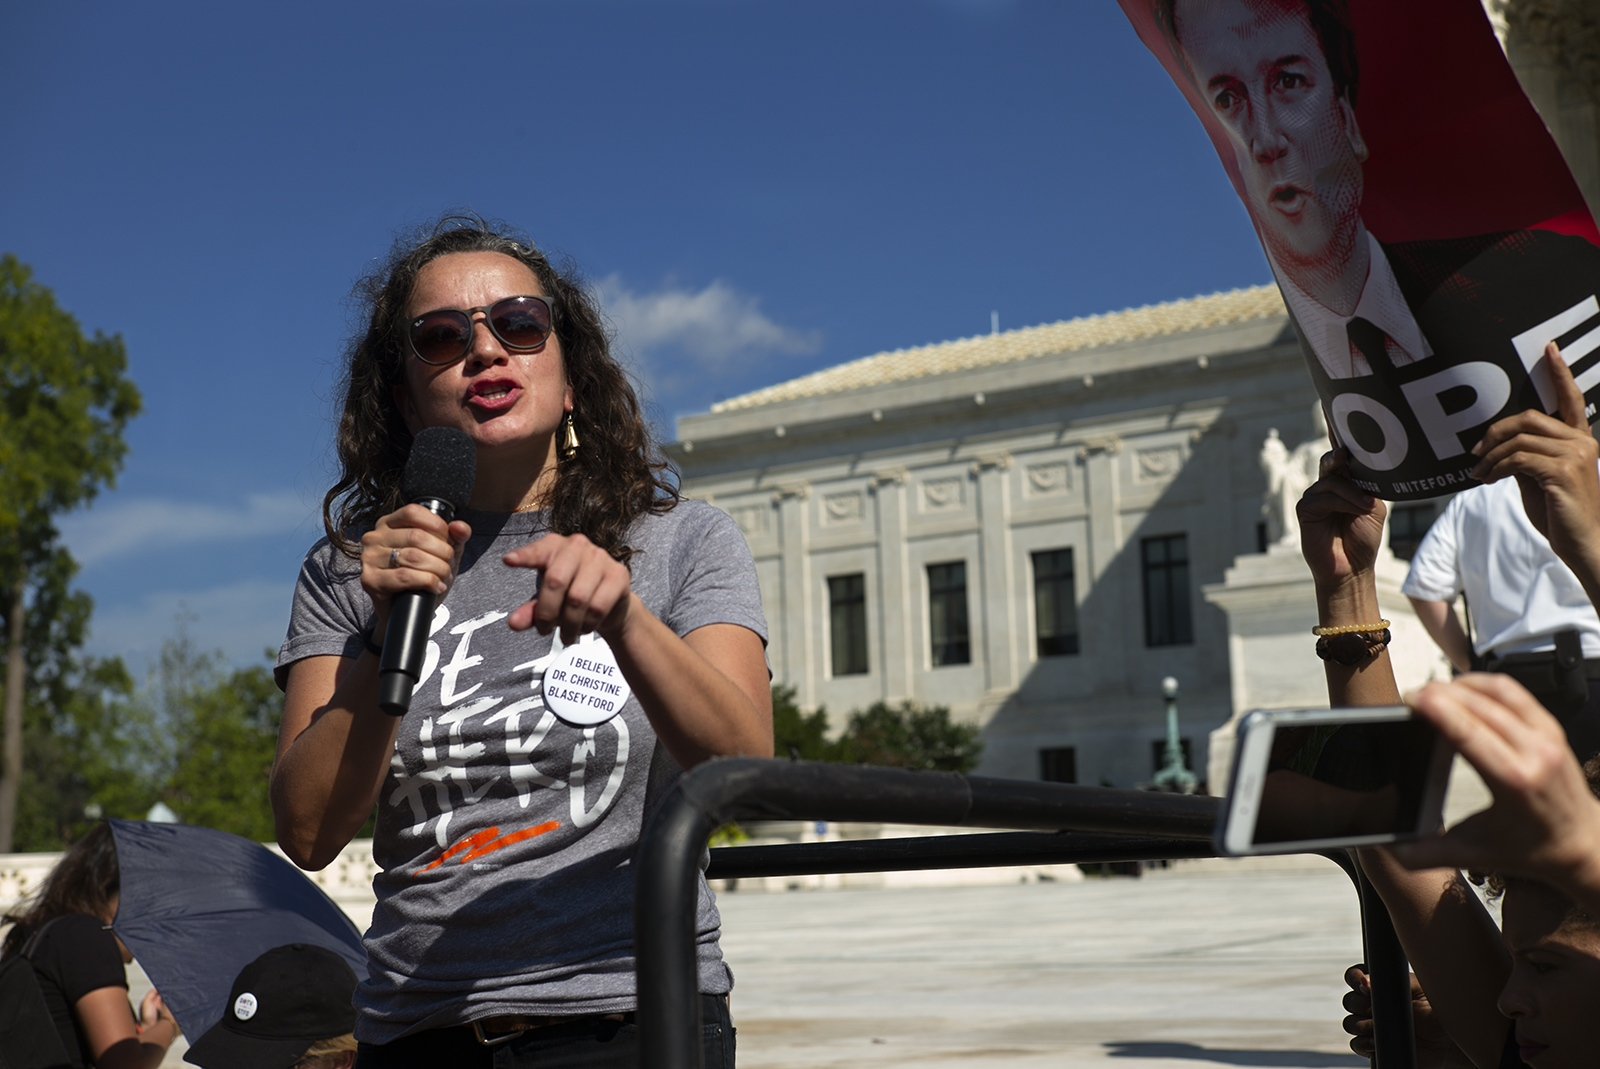 Ana Maria Archila, one of the women who confronted Senator Jeff Flake in an elevator, speaks to a crowd in front of the U.S. Supreme Court building.